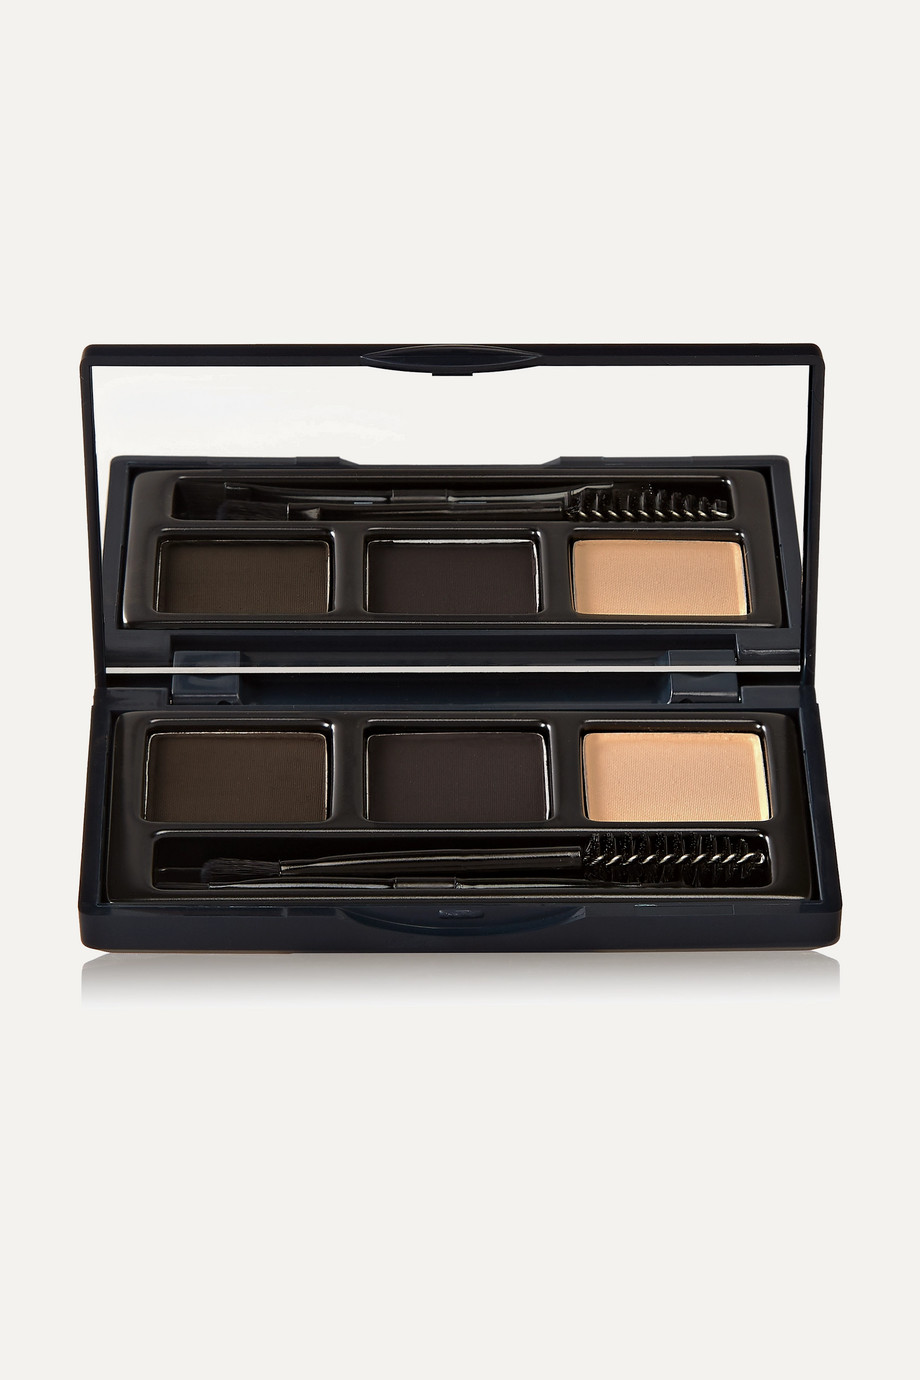 BBB LONDON Dream Brows Palette - Medium/ Dark